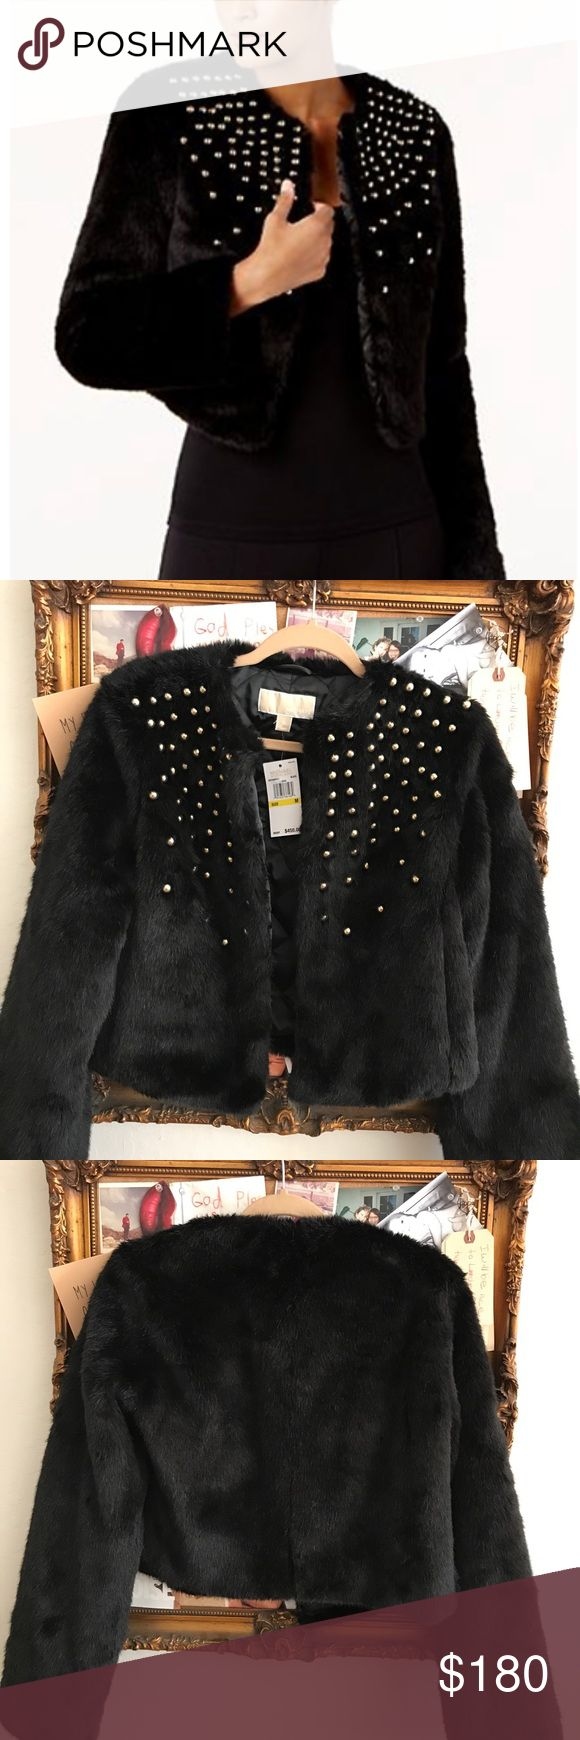 NWT MICHAEL Michael Kors Faux Fur Studded Jacket NWT MICHAEL Michael Kors Faux Fur Gold Studded Jacket in Black Medium $450 MICHAEL Michael Kors Jackets & Coats